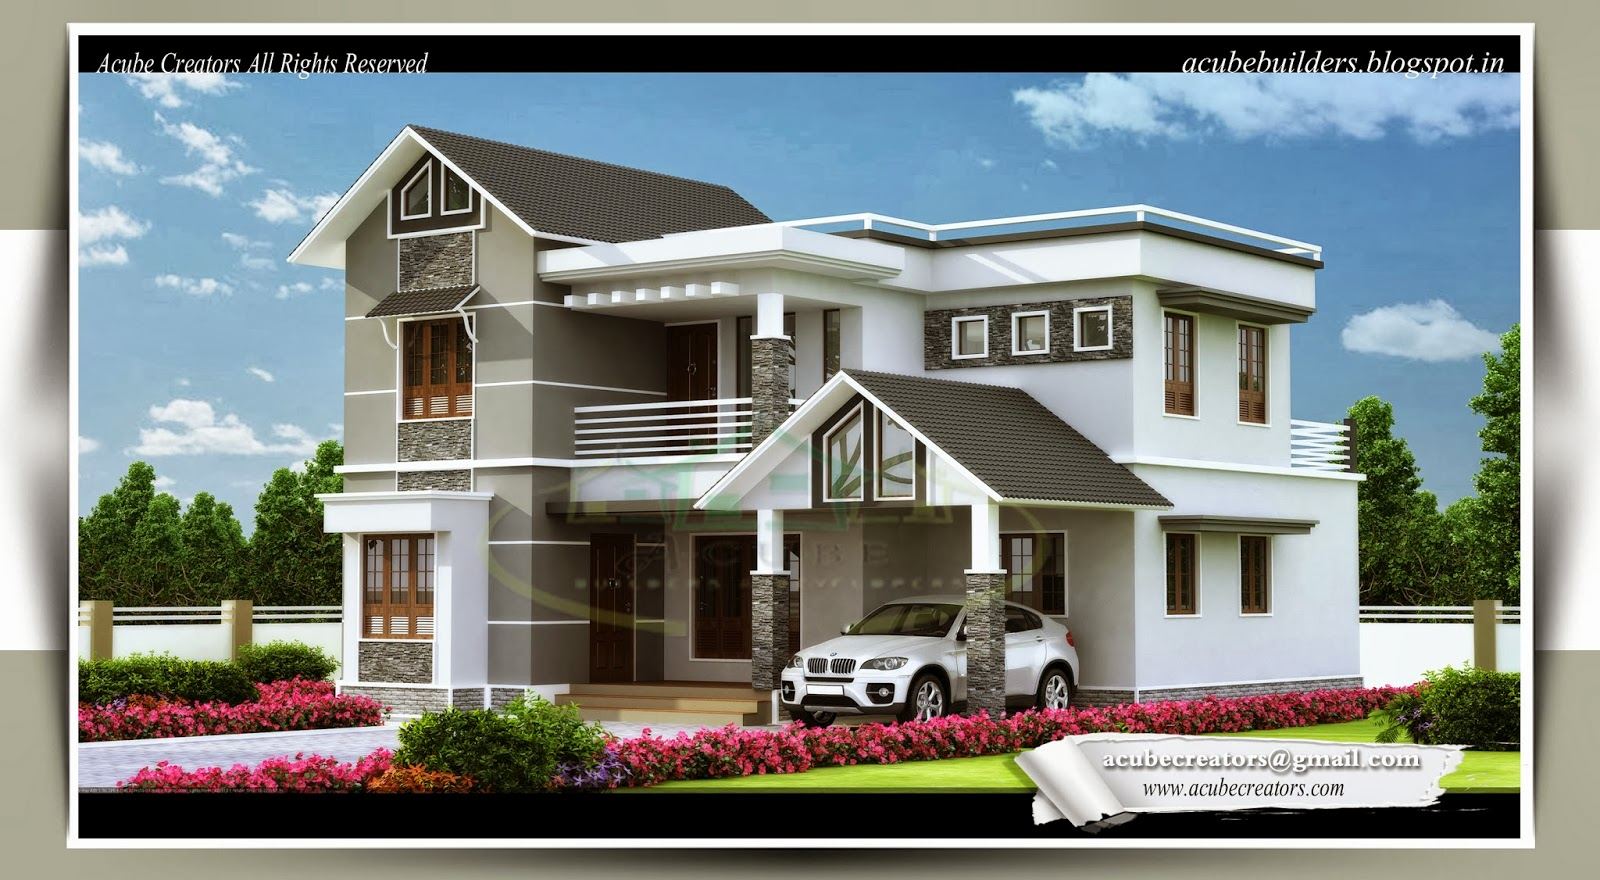 1983 4 bedroom villa design plan 174 acube for 4 bedroom villa plans